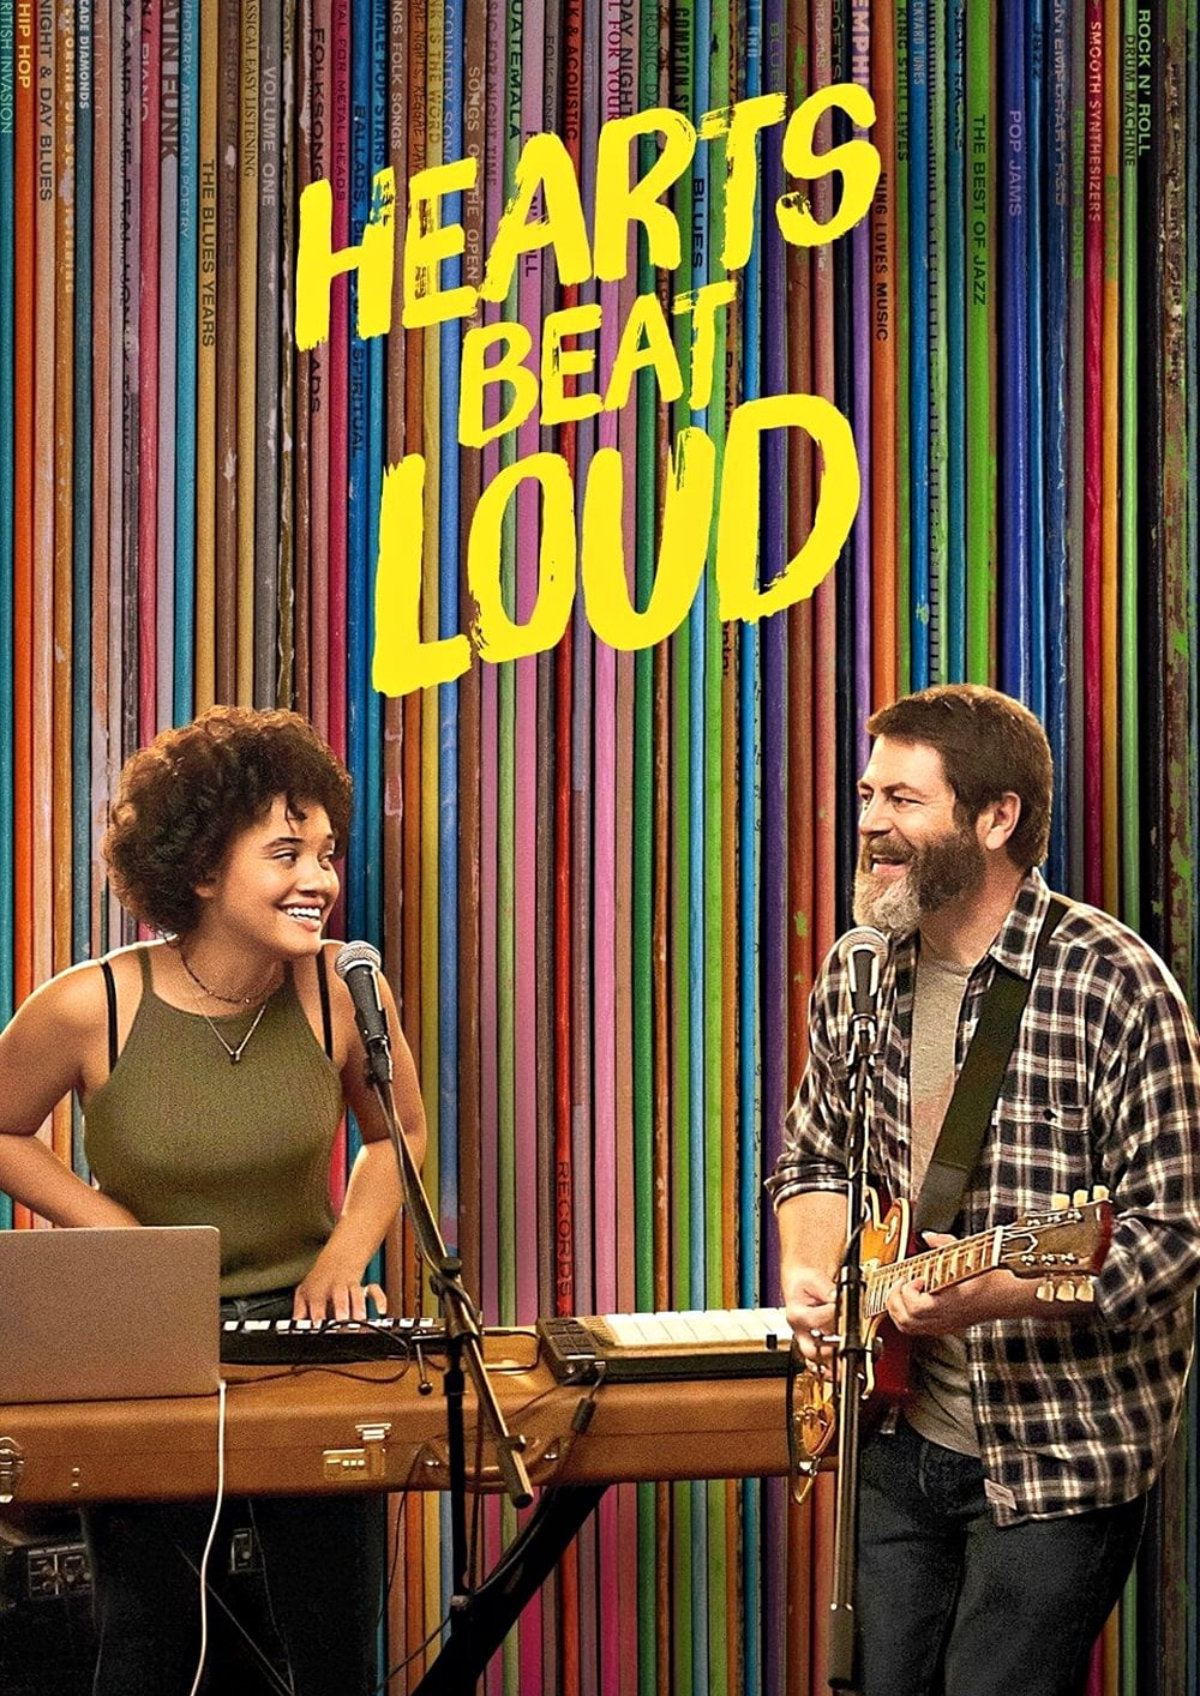 'Hearts Beat Loud' movie poster